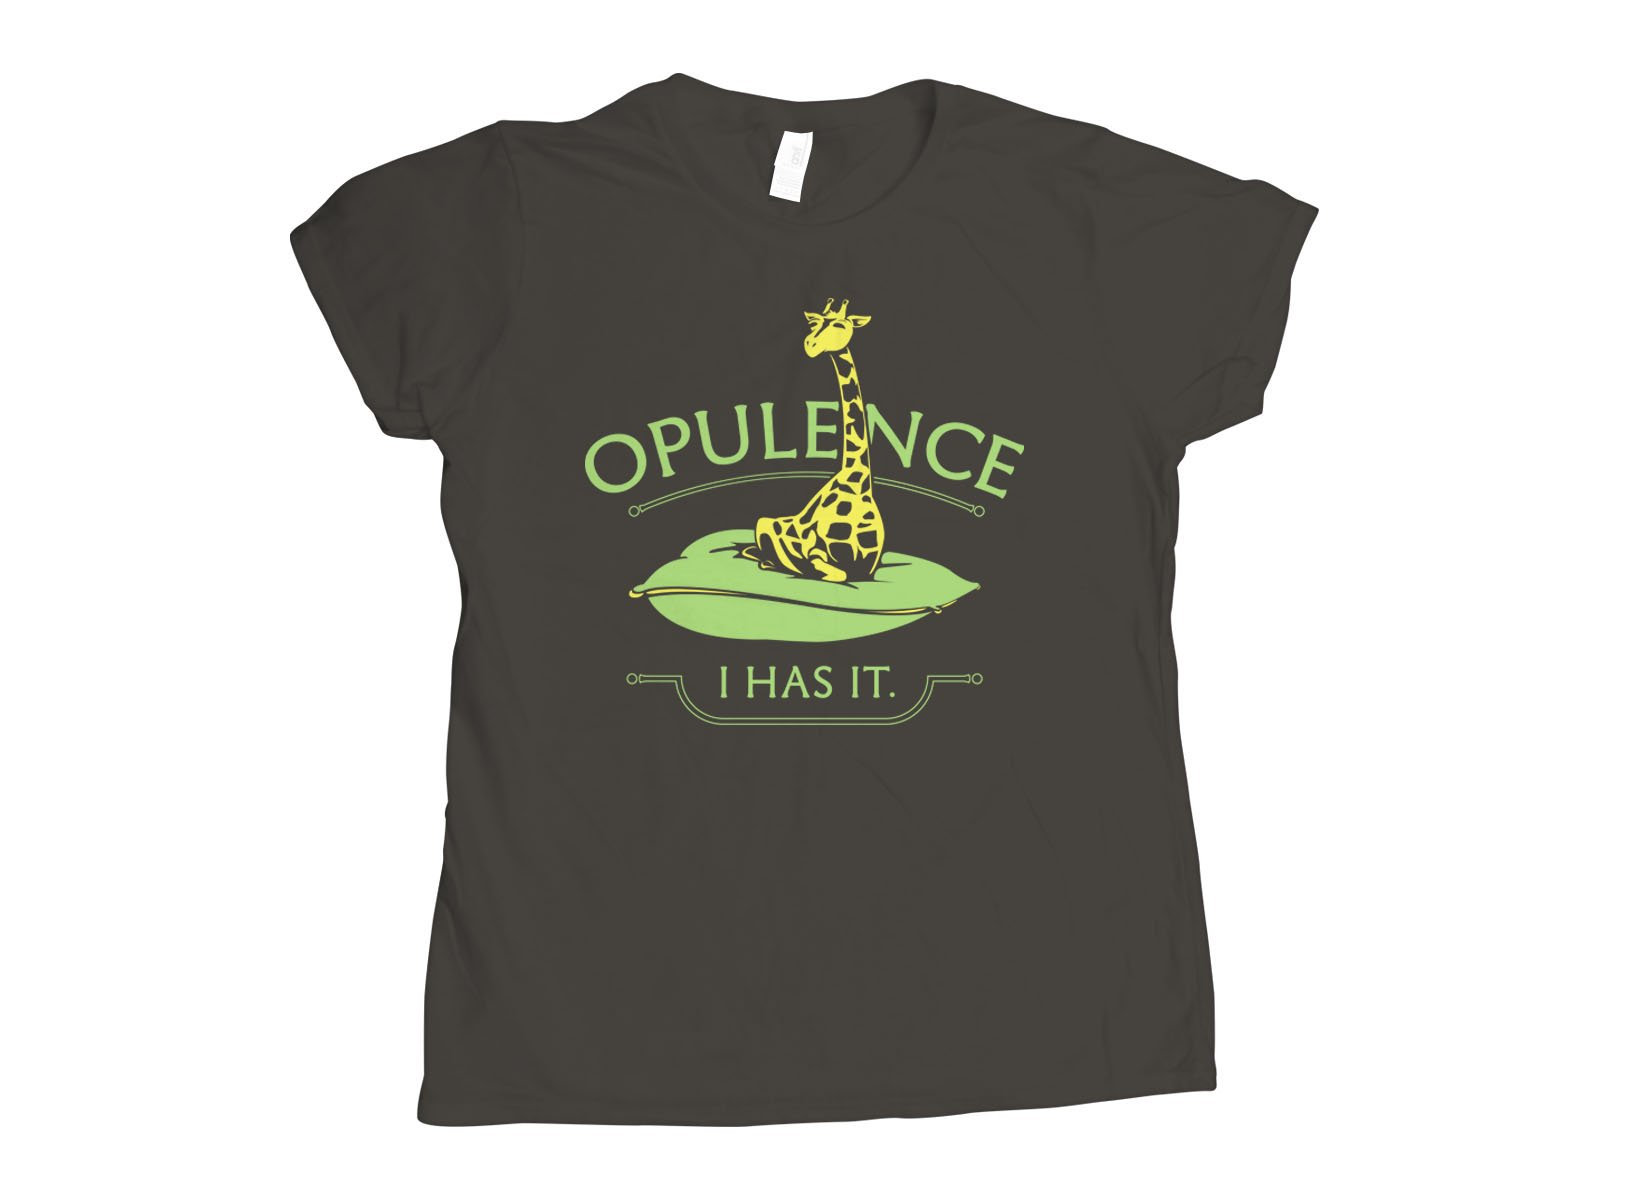 Opulence, I Has It. on Womens T-Shirt